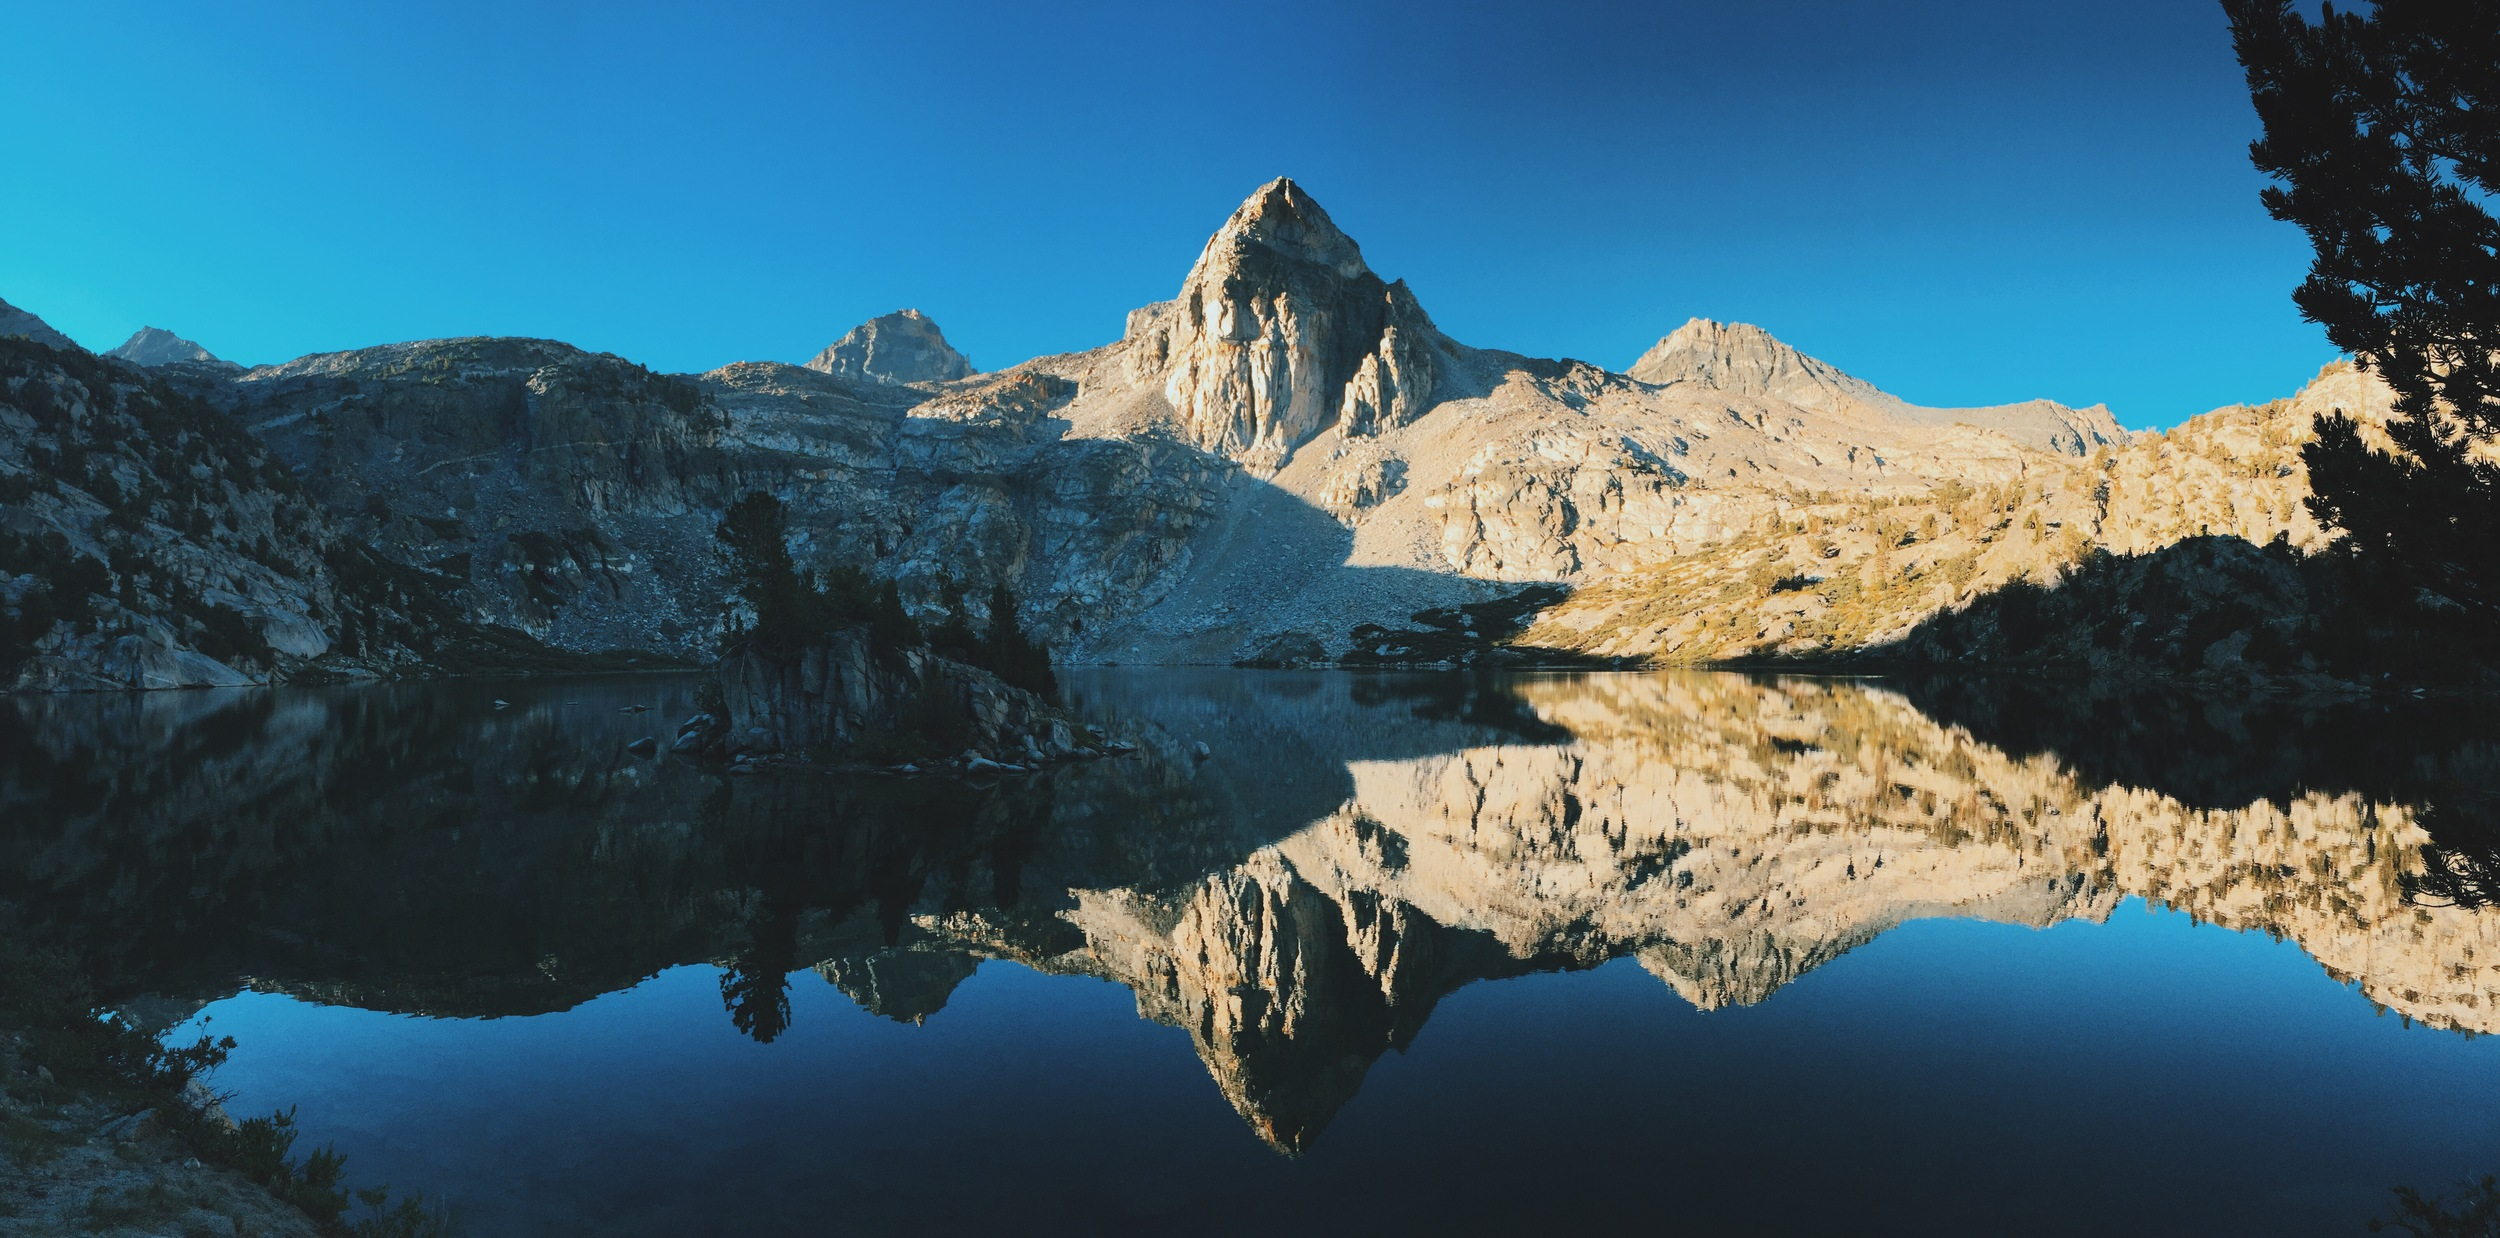 The Painted Lady. Rae Lakes, Kings Canyon National Park